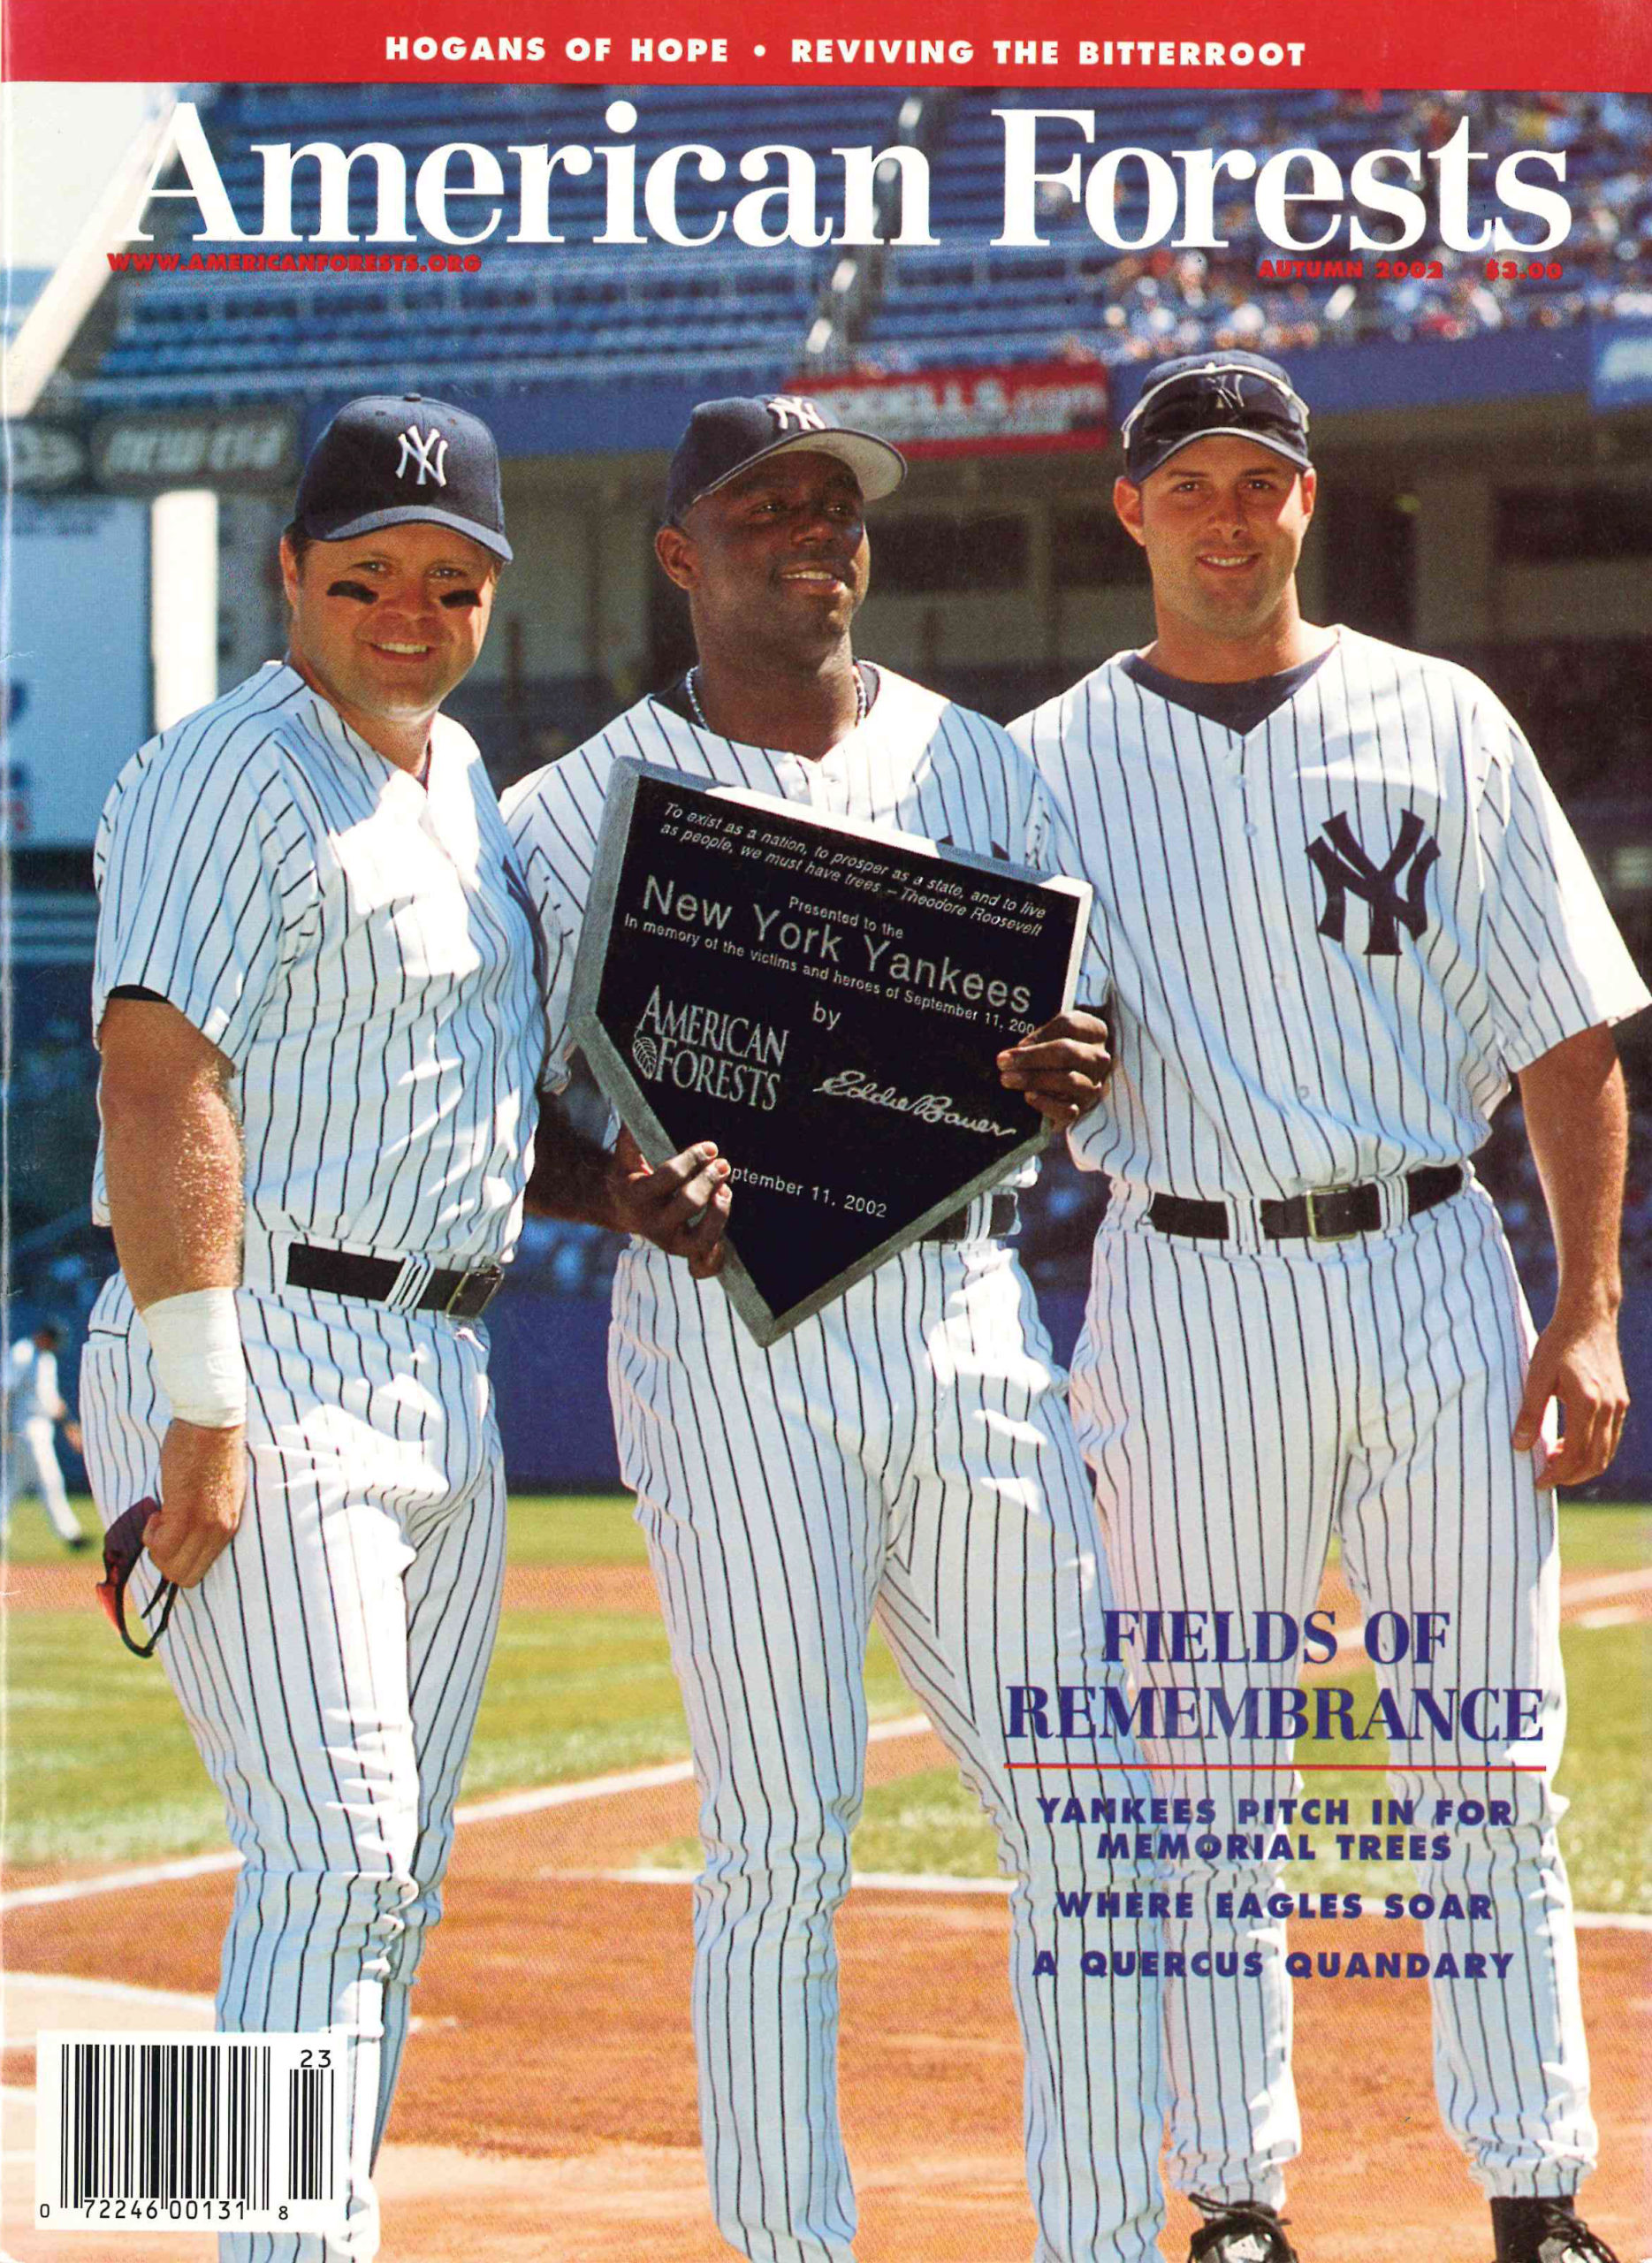 In September 2002, American Forests and the New York Yankees planted the first of thousands of trees in Yankee Stadium's Monument Park to honor victims of the September 11th terrorist attacks.